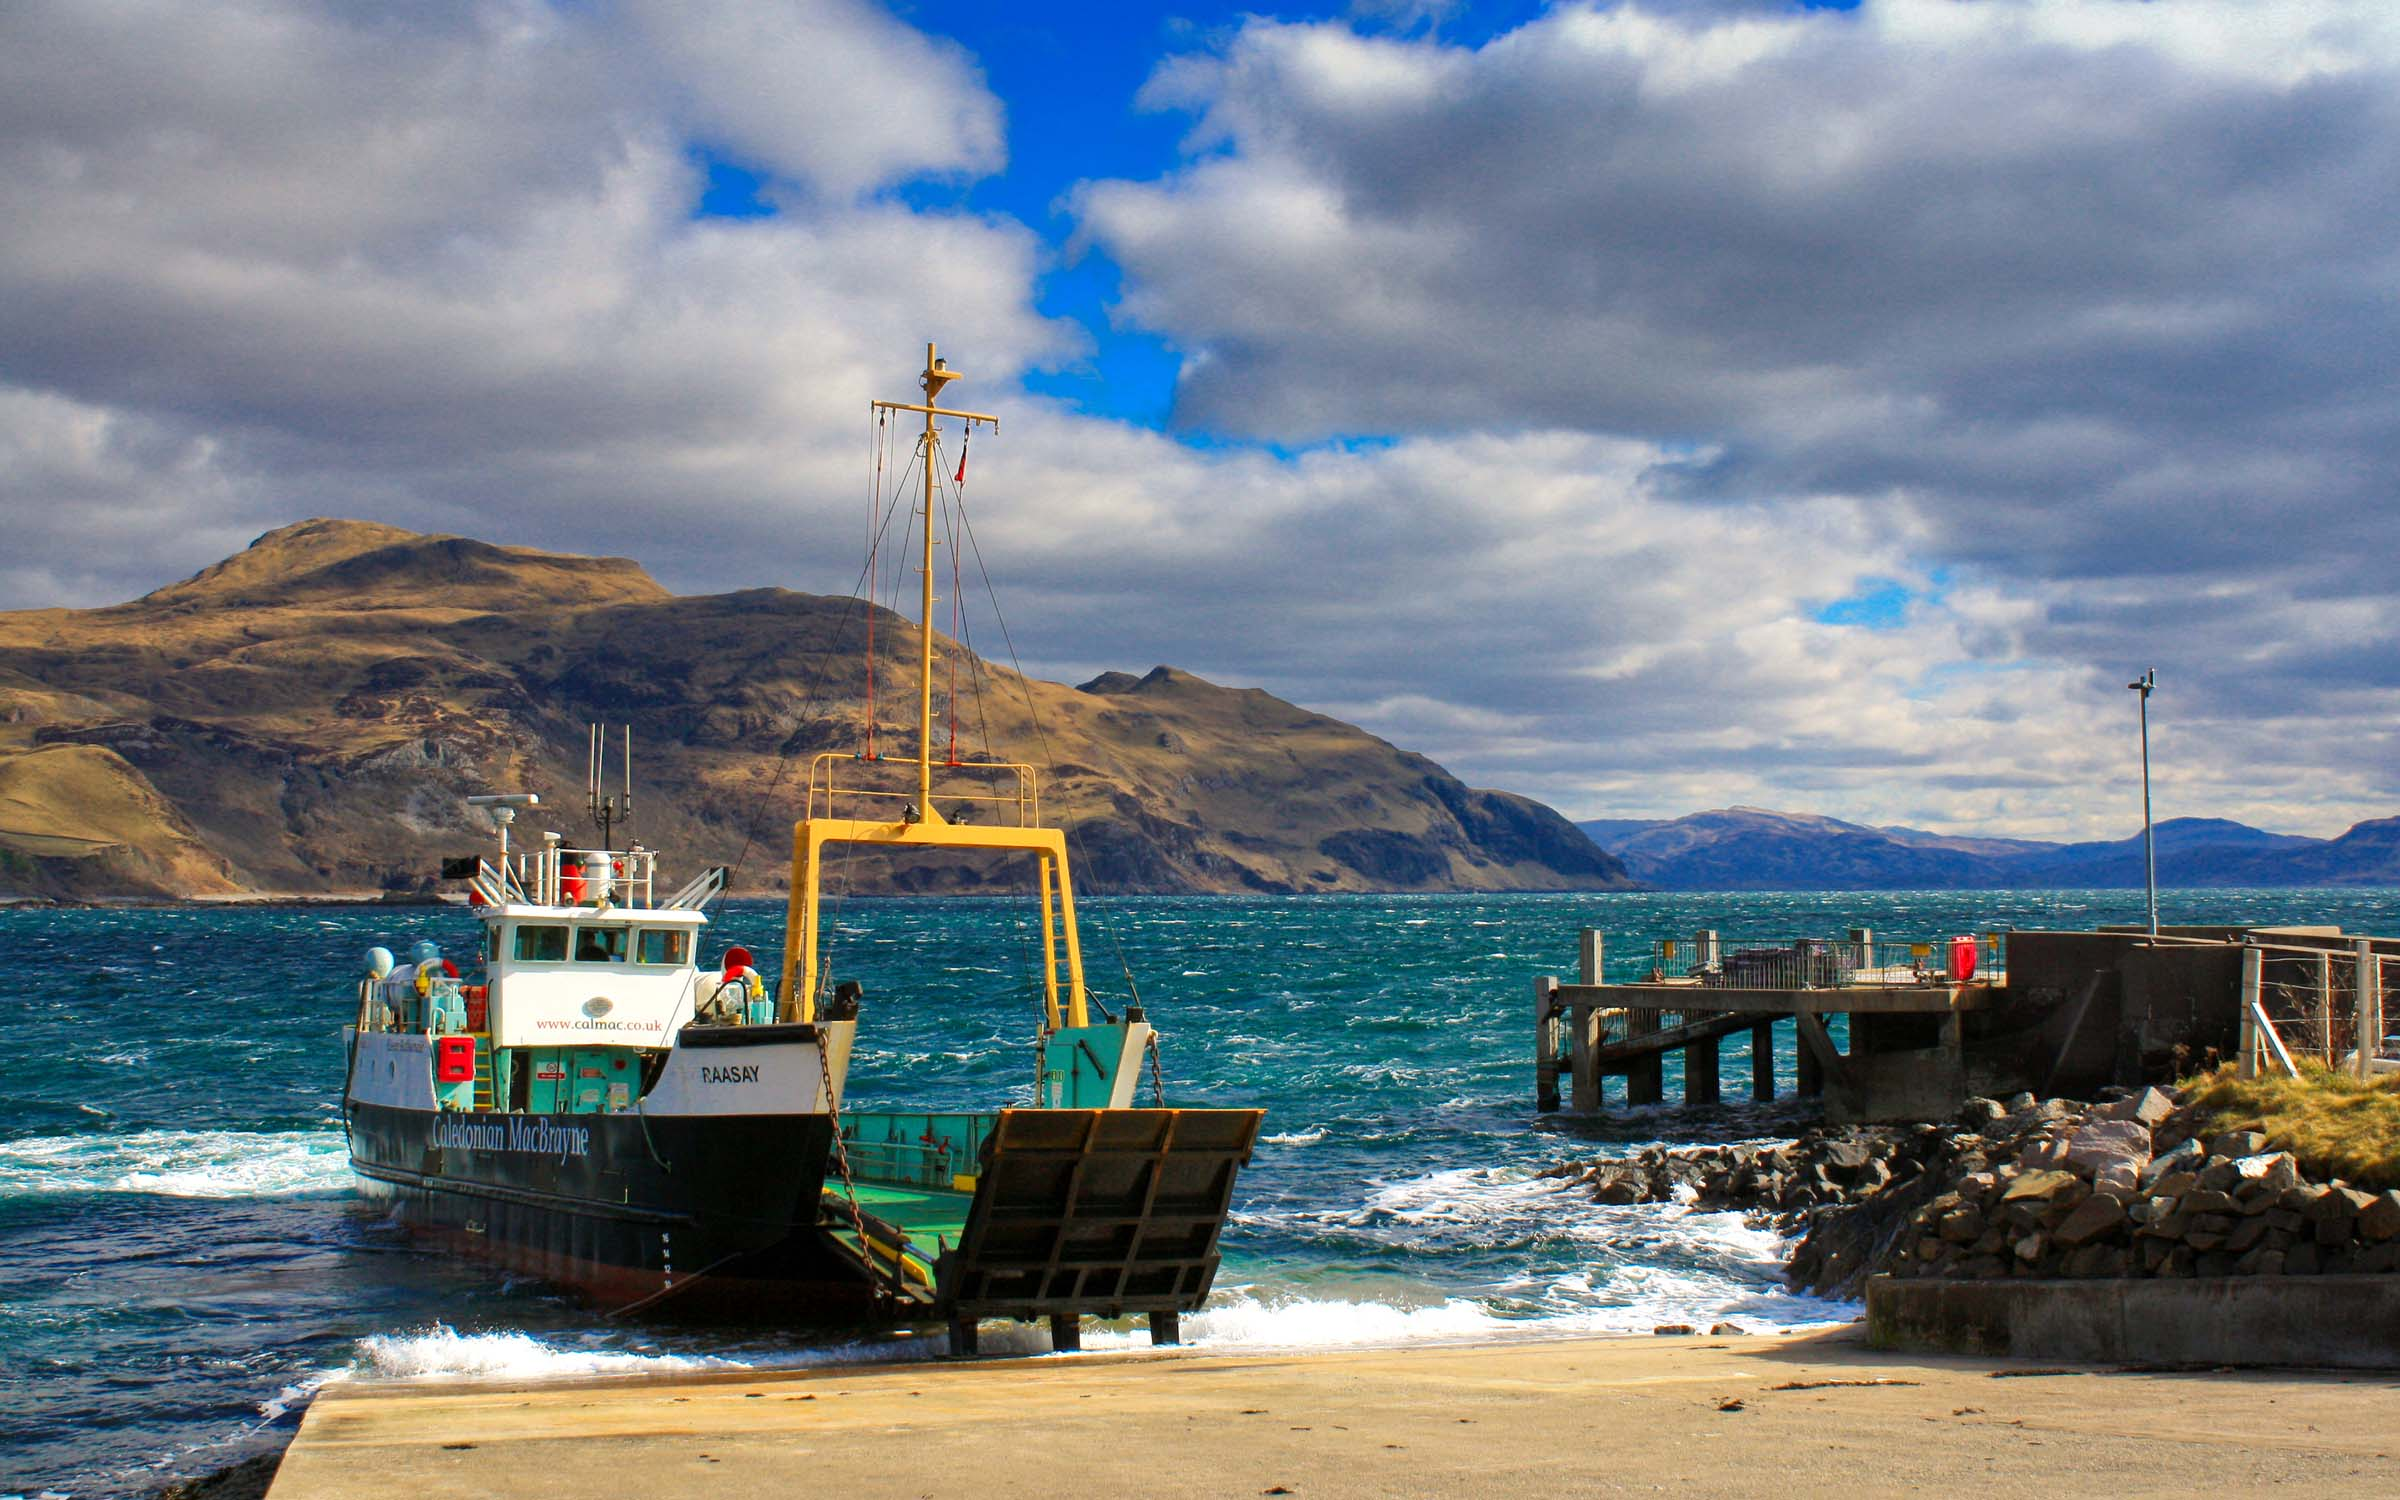 Raasay at Kilchoan slipway (Ships of CalMac)